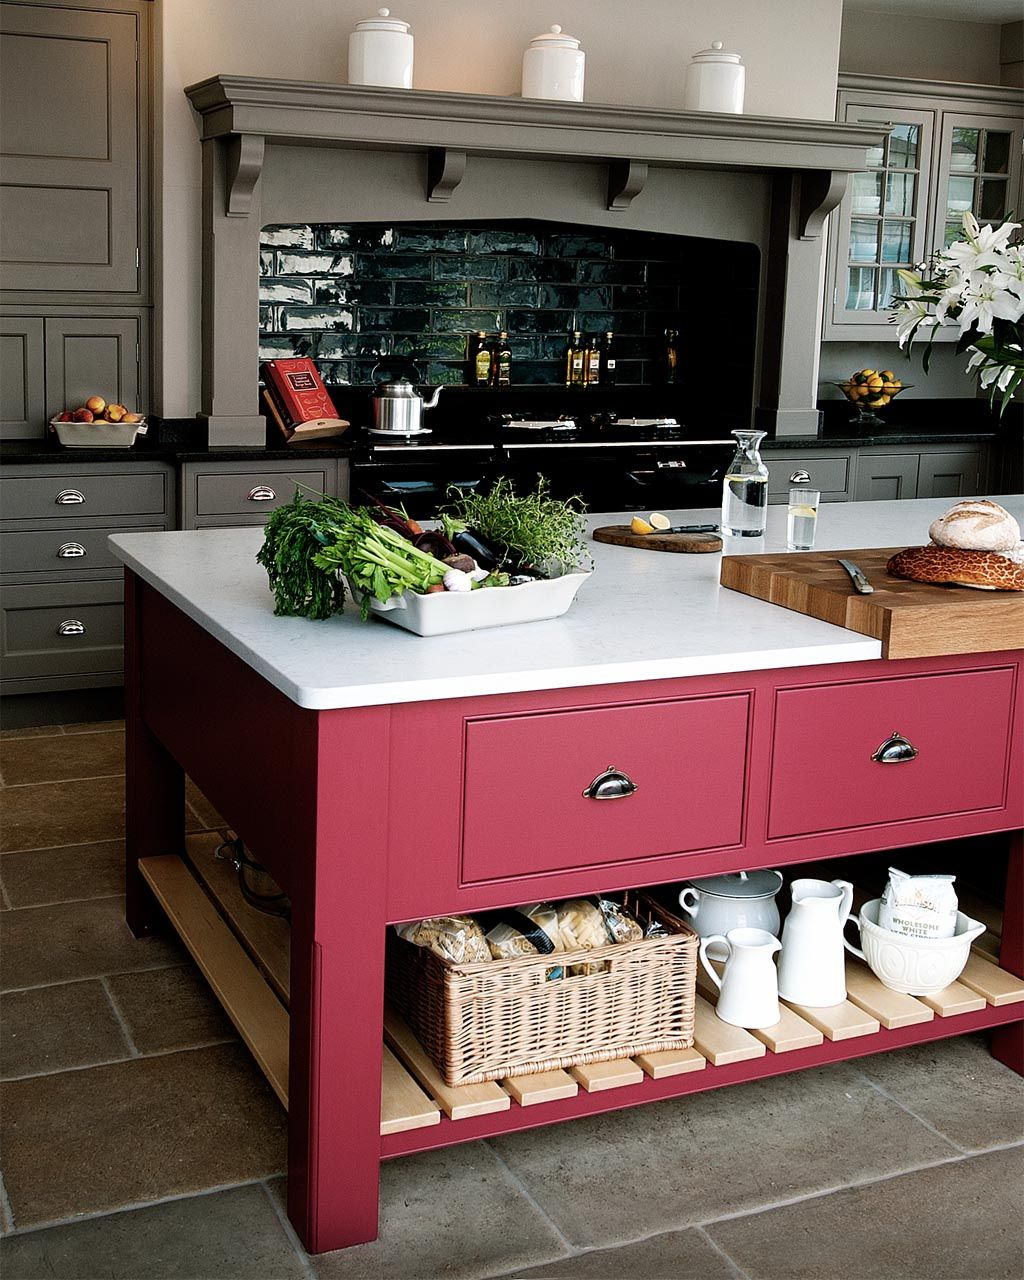 Olive Grey Kitchen: Like The Olive Grey Colour On The Far Wall